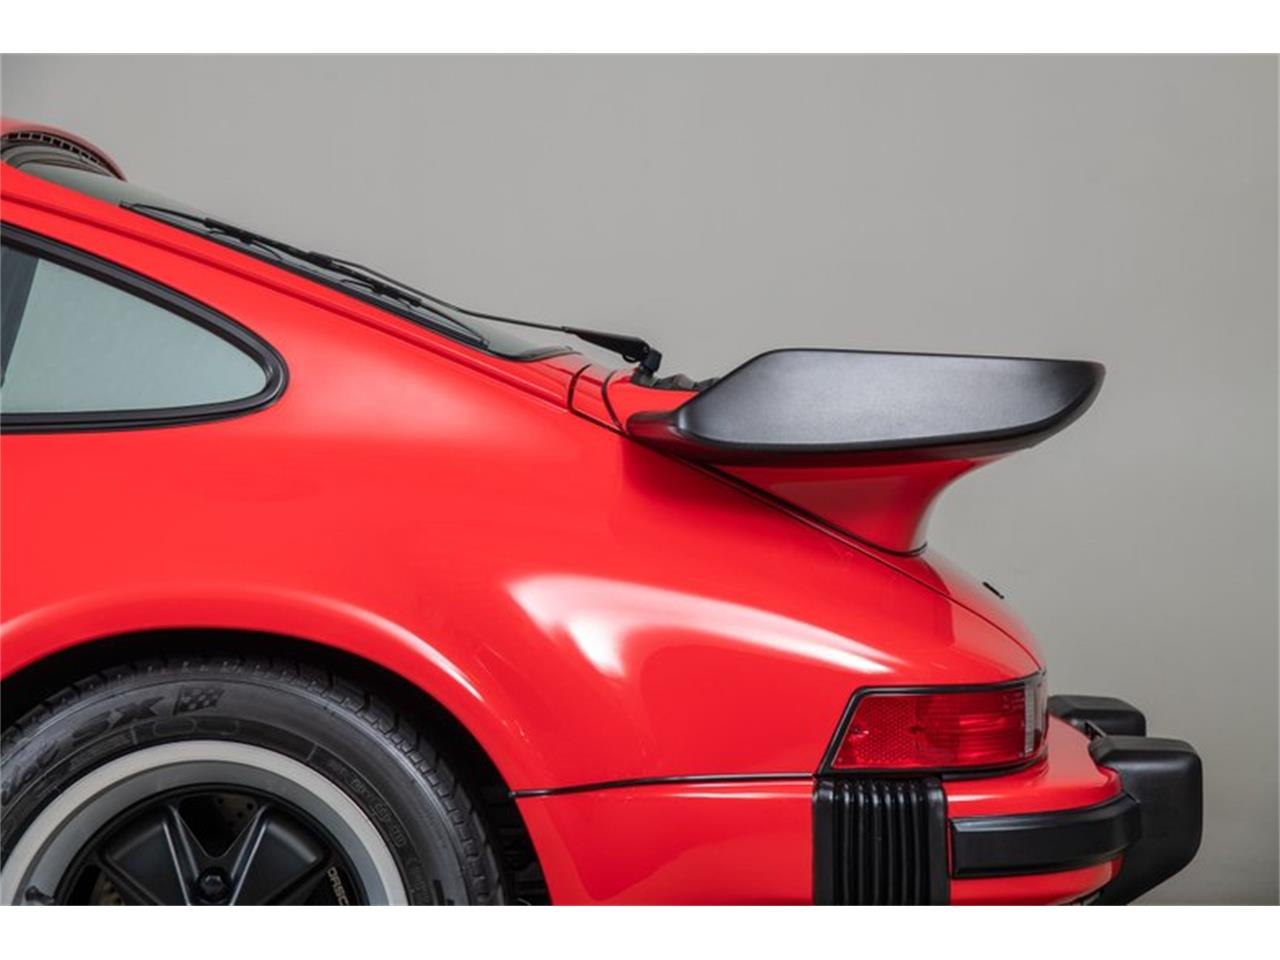 1988 Porsche 911 Carrera Turbo (CC-1322892) for sale in Scotts Valley, California